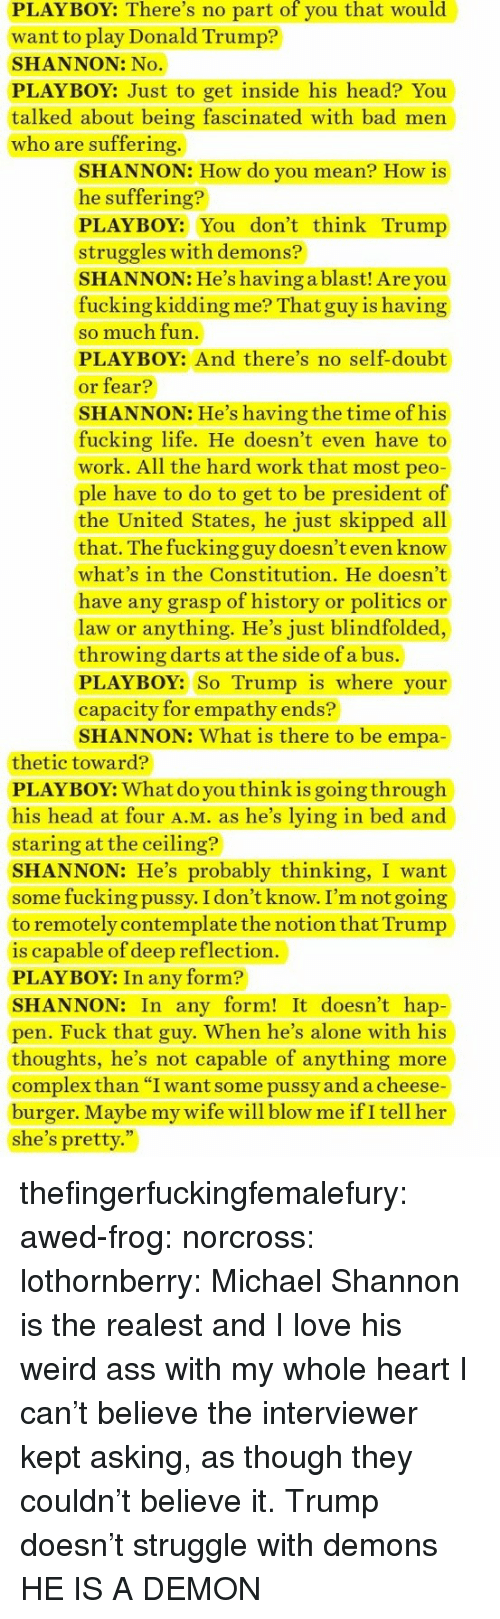 """Being Alone, Ass, and Bad: PLAYBOY: There's no part of you that would  want to play Donald Trump?  SHANNON: No  PLAYBOY: Just to get inside his head? You  talked about being fascinated with bad men  who are suffering.  SHANNON: How do you mean? How is  he suffering?  PLAYBOY: You don't think Trump  struggles with demons?  SHANNON: He's having a blast! Are you  fucking kidding me? That guy is having  so much fun  PLAYBOY: And there's no self-doubt  or fear?  SHANNON: He's having the time of his  fucking life. He doesn't even have to  work. All the hard work that most peo  ple have to do to get to be president of  the United States, he just skipped all  that. The fucking guy doesn't even know  what's in the Constitution. He doesn't  have any grasp of history or politics or  law or anything. He's just blindfolded,  throwing darts at the side of a bus.  PLAYBOY: So Trump is where your  capacity for empathy ends?  SHANNON: What is there to be empa  thetic toward?  PLAYBOY: What do you thinkis going through  his head at four A.M. as he's lying in bed and  staring at the ceiling?  SHANNON: He's probably thinking, I want  some fucking pussy. I don't know. I'm not going  to remotely contemplate the notion that Trump  is capable of deep reflection.  PLAYBOY: In any form?  SHANNON: In any form! It doesn't hap  pen. Fuck that guy. When he's alone with his  thoughts, he's not capable of anything more  complex than """"I want some pussy and a cheese  burger. Maybe my wife will blow me ifI tell her  she's pretty."""" thefingerfuckingfemalefury:  awed-frog:  norcross:  lothornberry: Michael Shannon is the realest and I love his weird ass with my whole heart  I can't believe the interviewer kept asking, as though they couldn't believe it.    Trump doesn't struggle with demons HE IS A DEMON"""